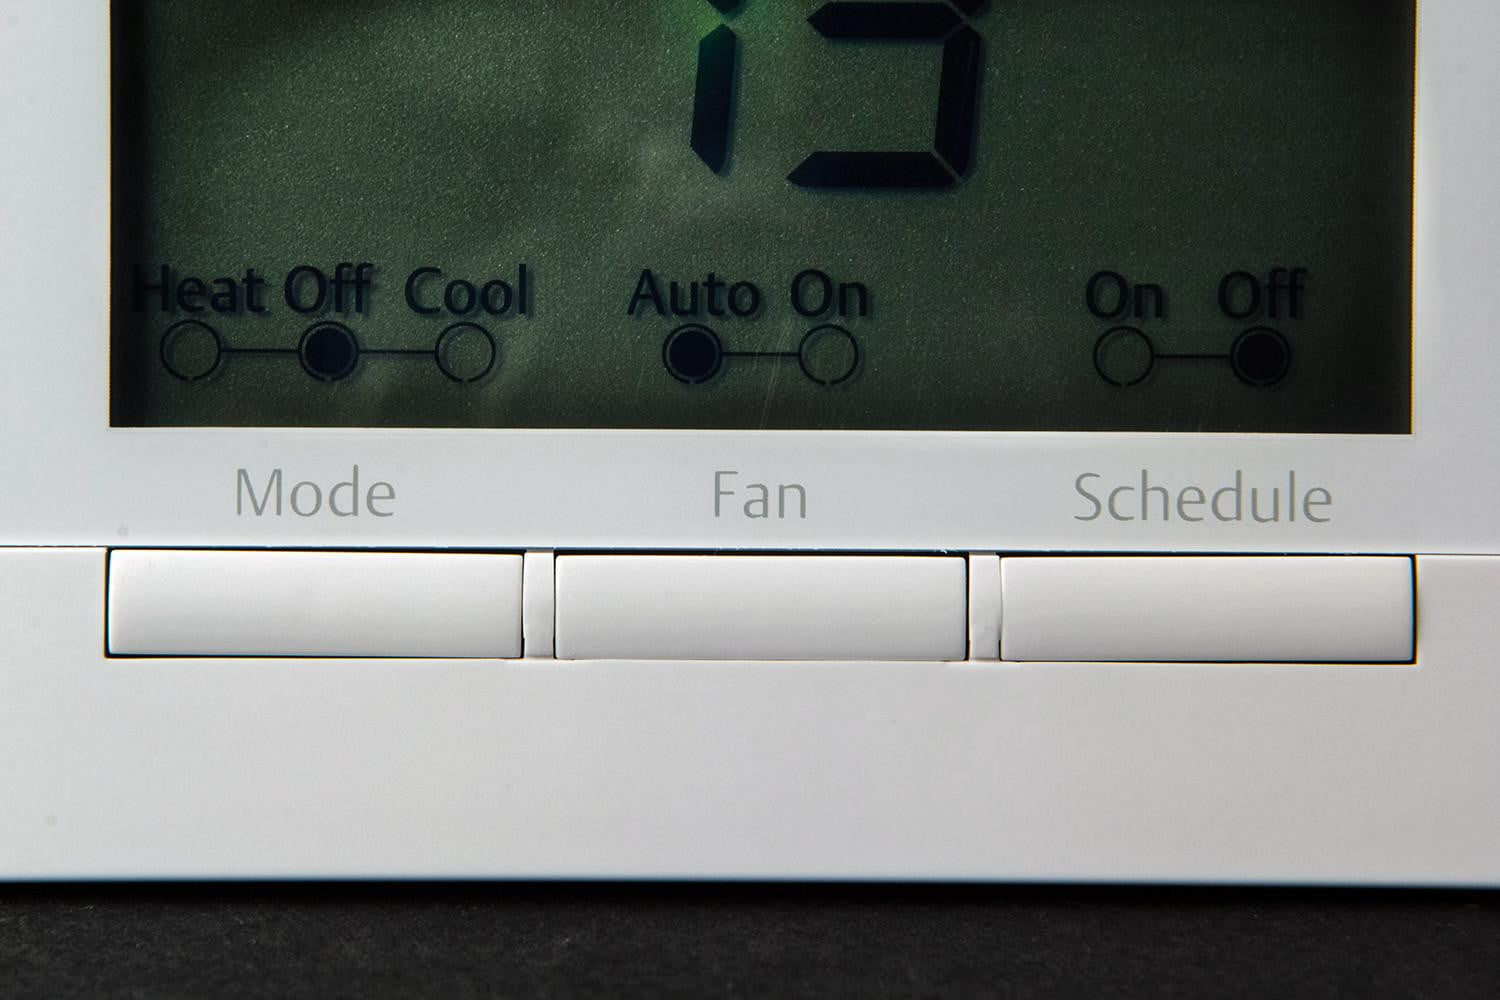 emerson sensi thermostat review digital trends emerson sensi themorstat review thermometer control